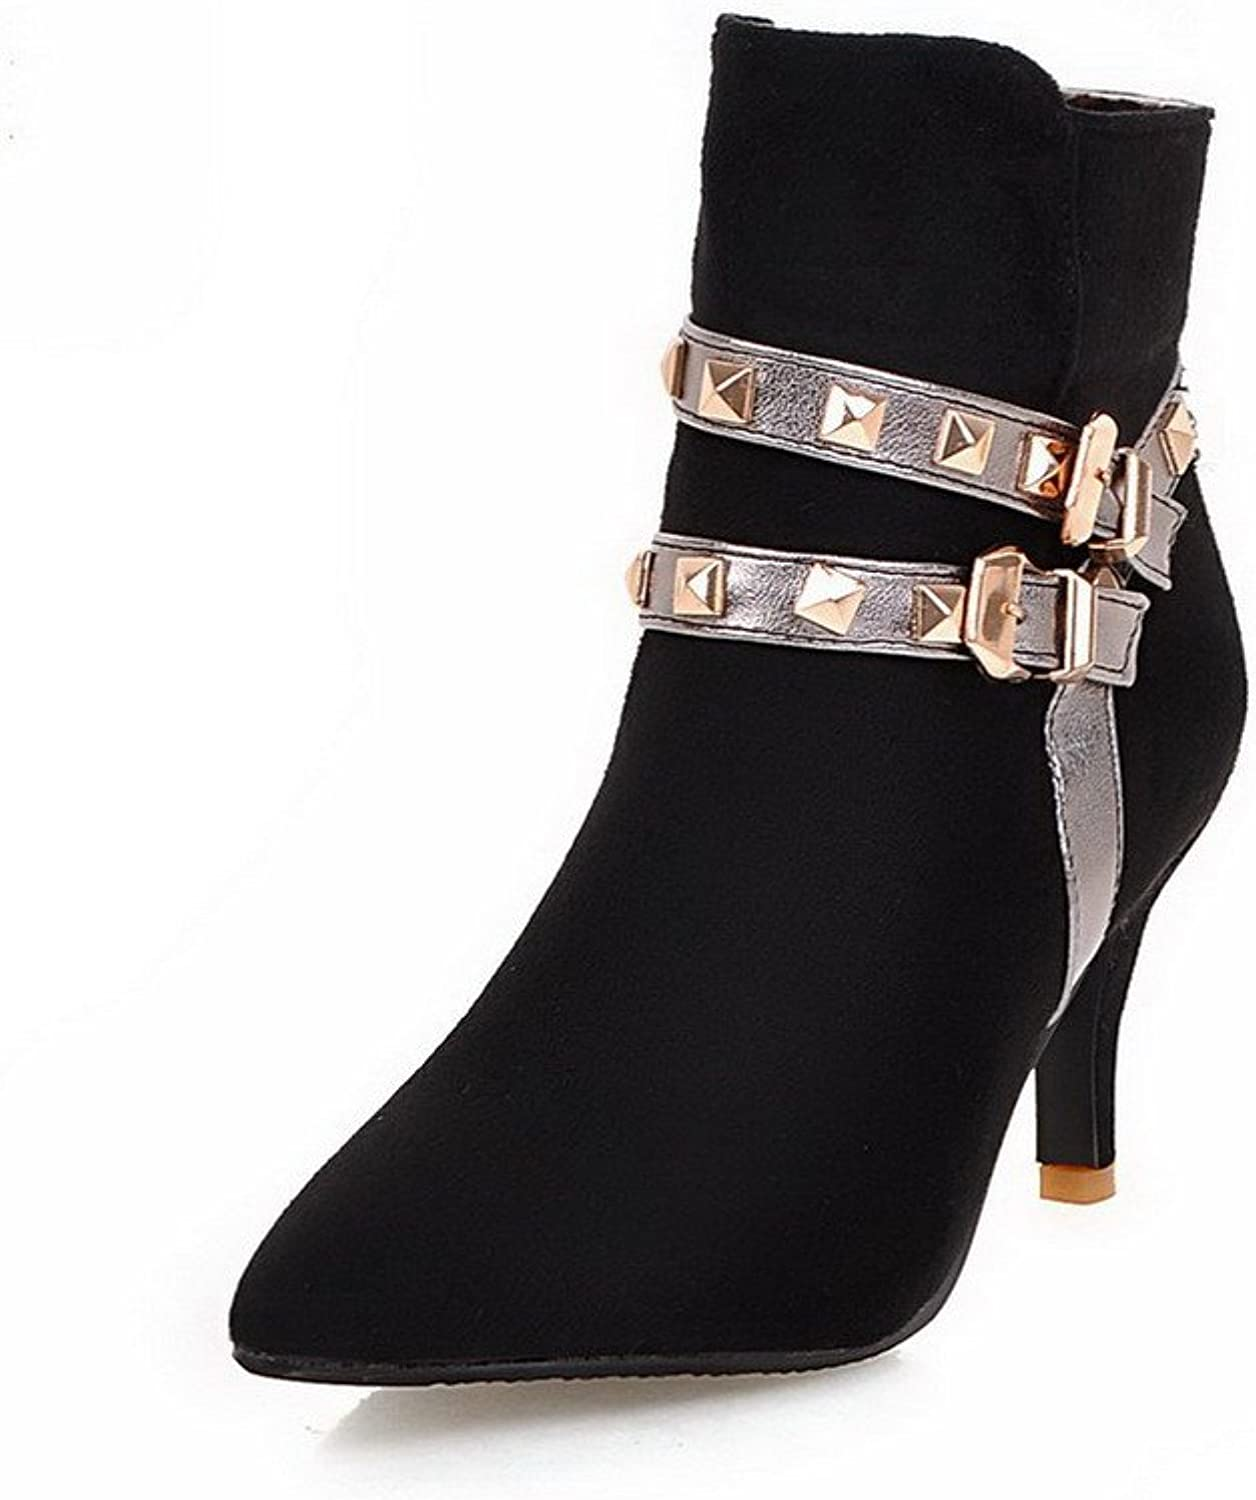 AllhqFashion Women's High-Heels Assorted colors Pointed Closed Toe Soft Material Zipper Boots